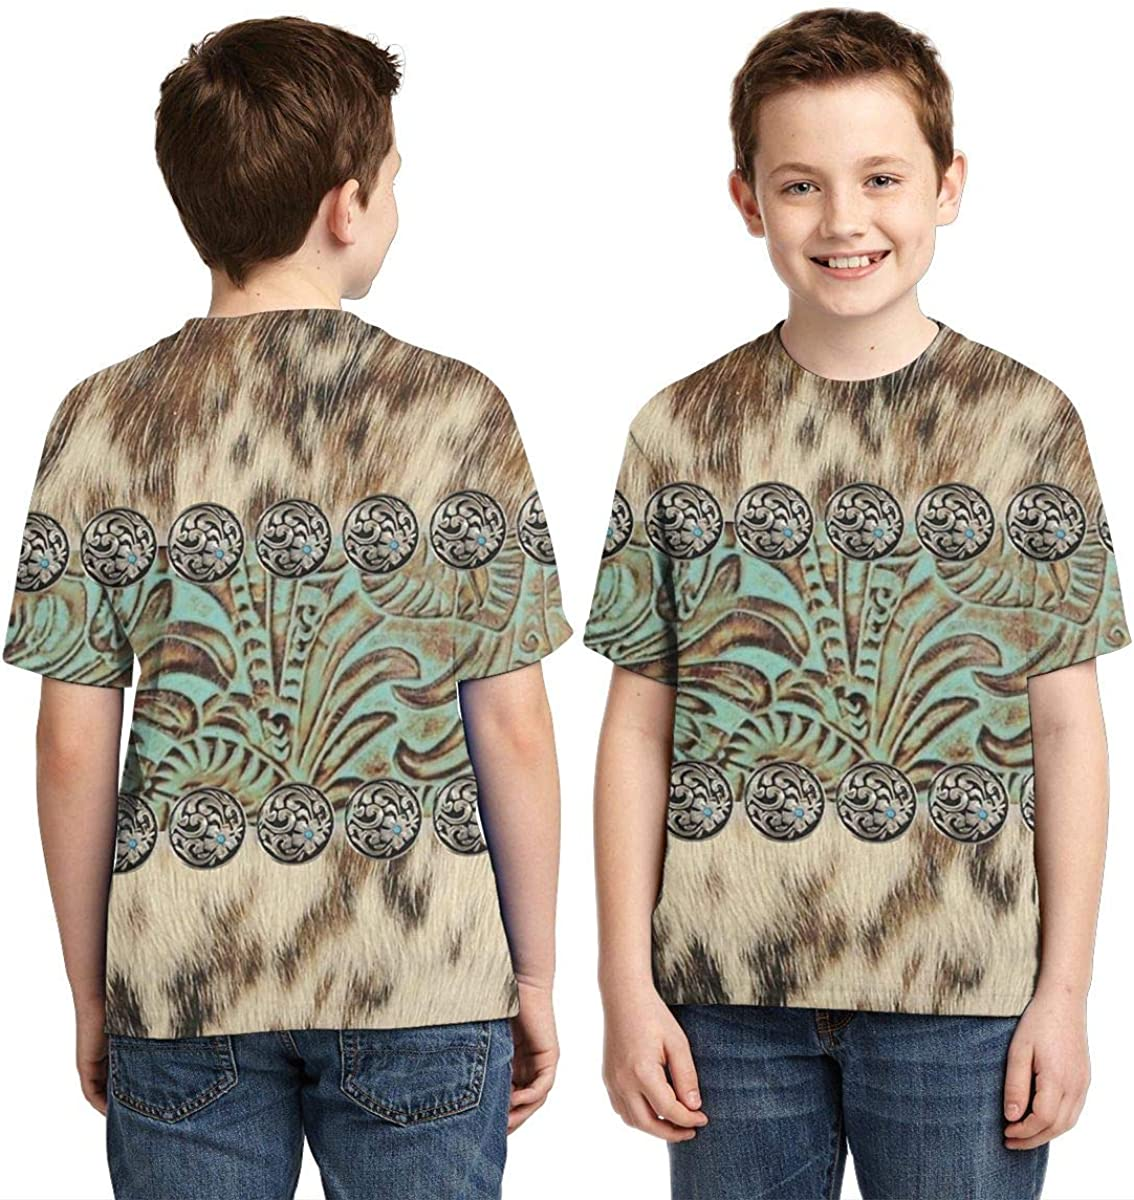 OPQH Boys Short Sleeve Rustic Brown Teal Western Country Tooled Leather 3D Printed T-Shirts Summer Cool Youth Kids Tees